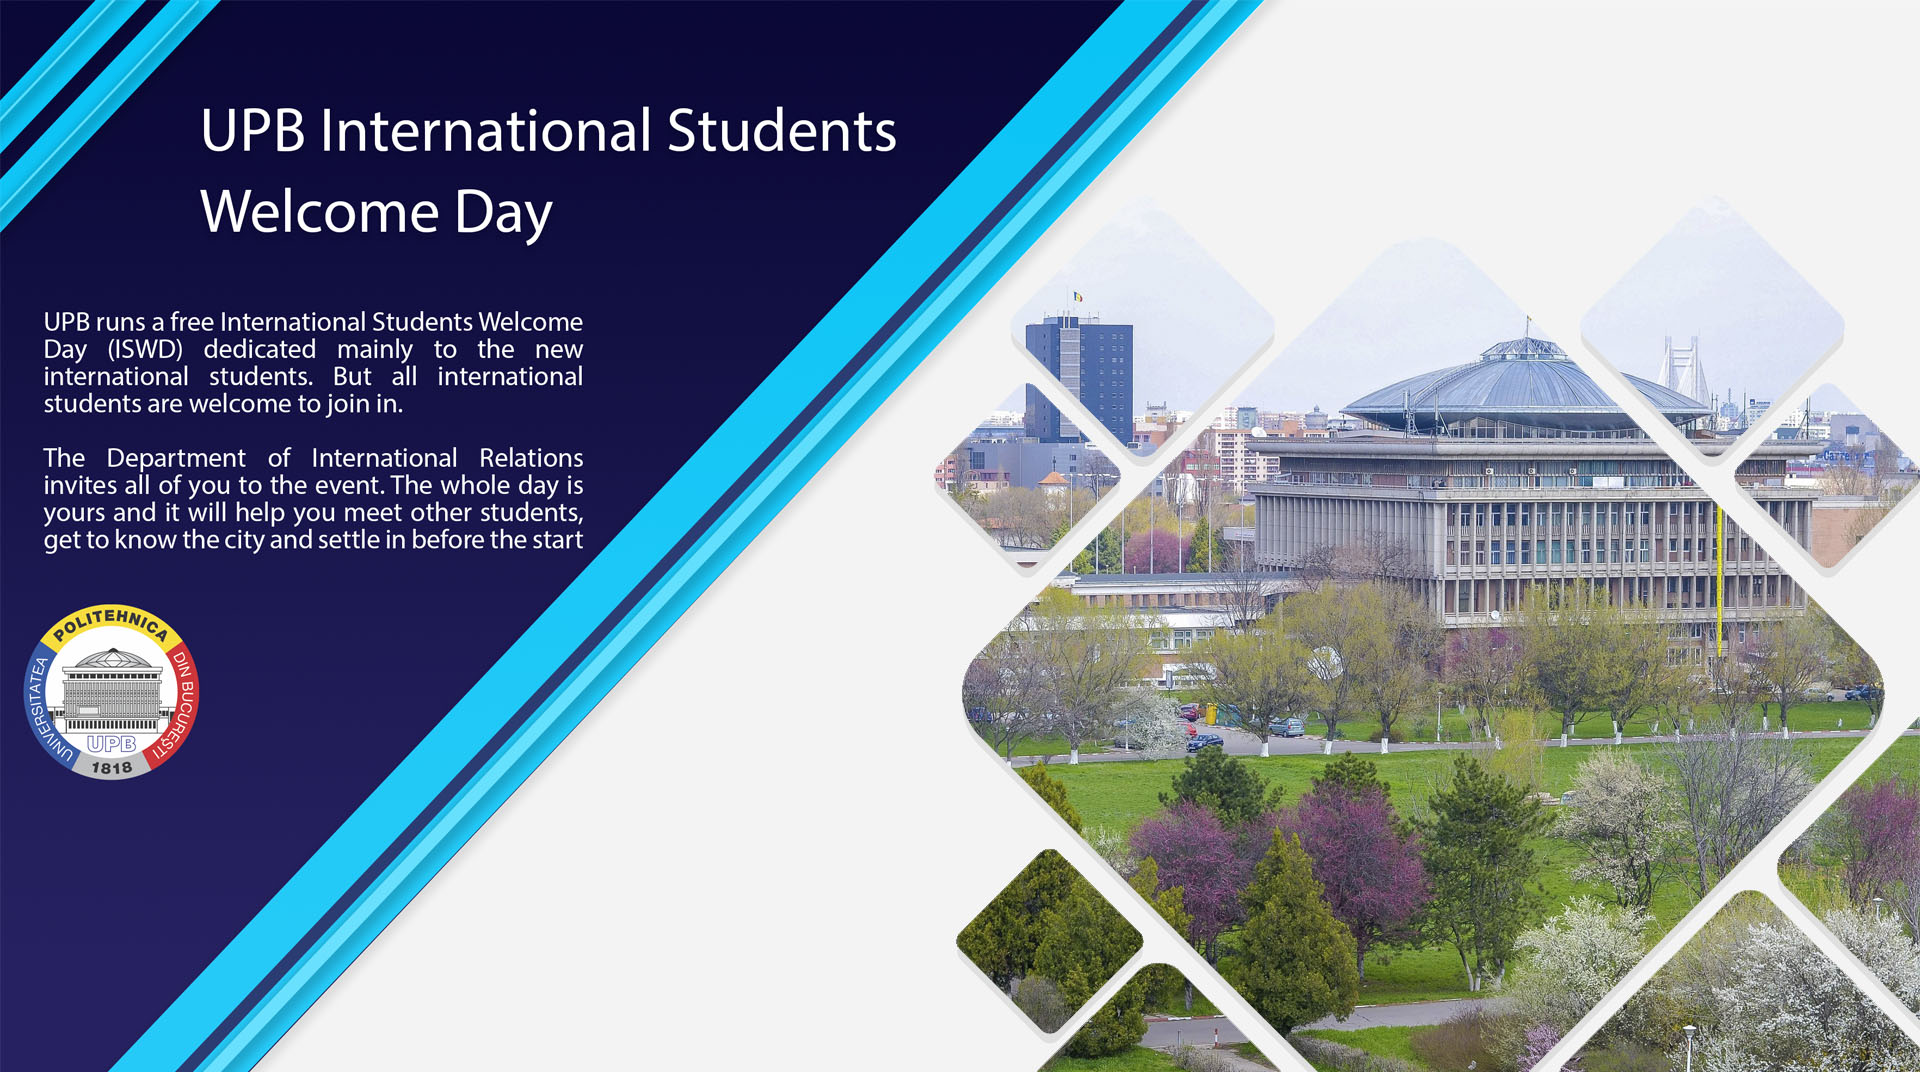 UPB International Students Welcome Day